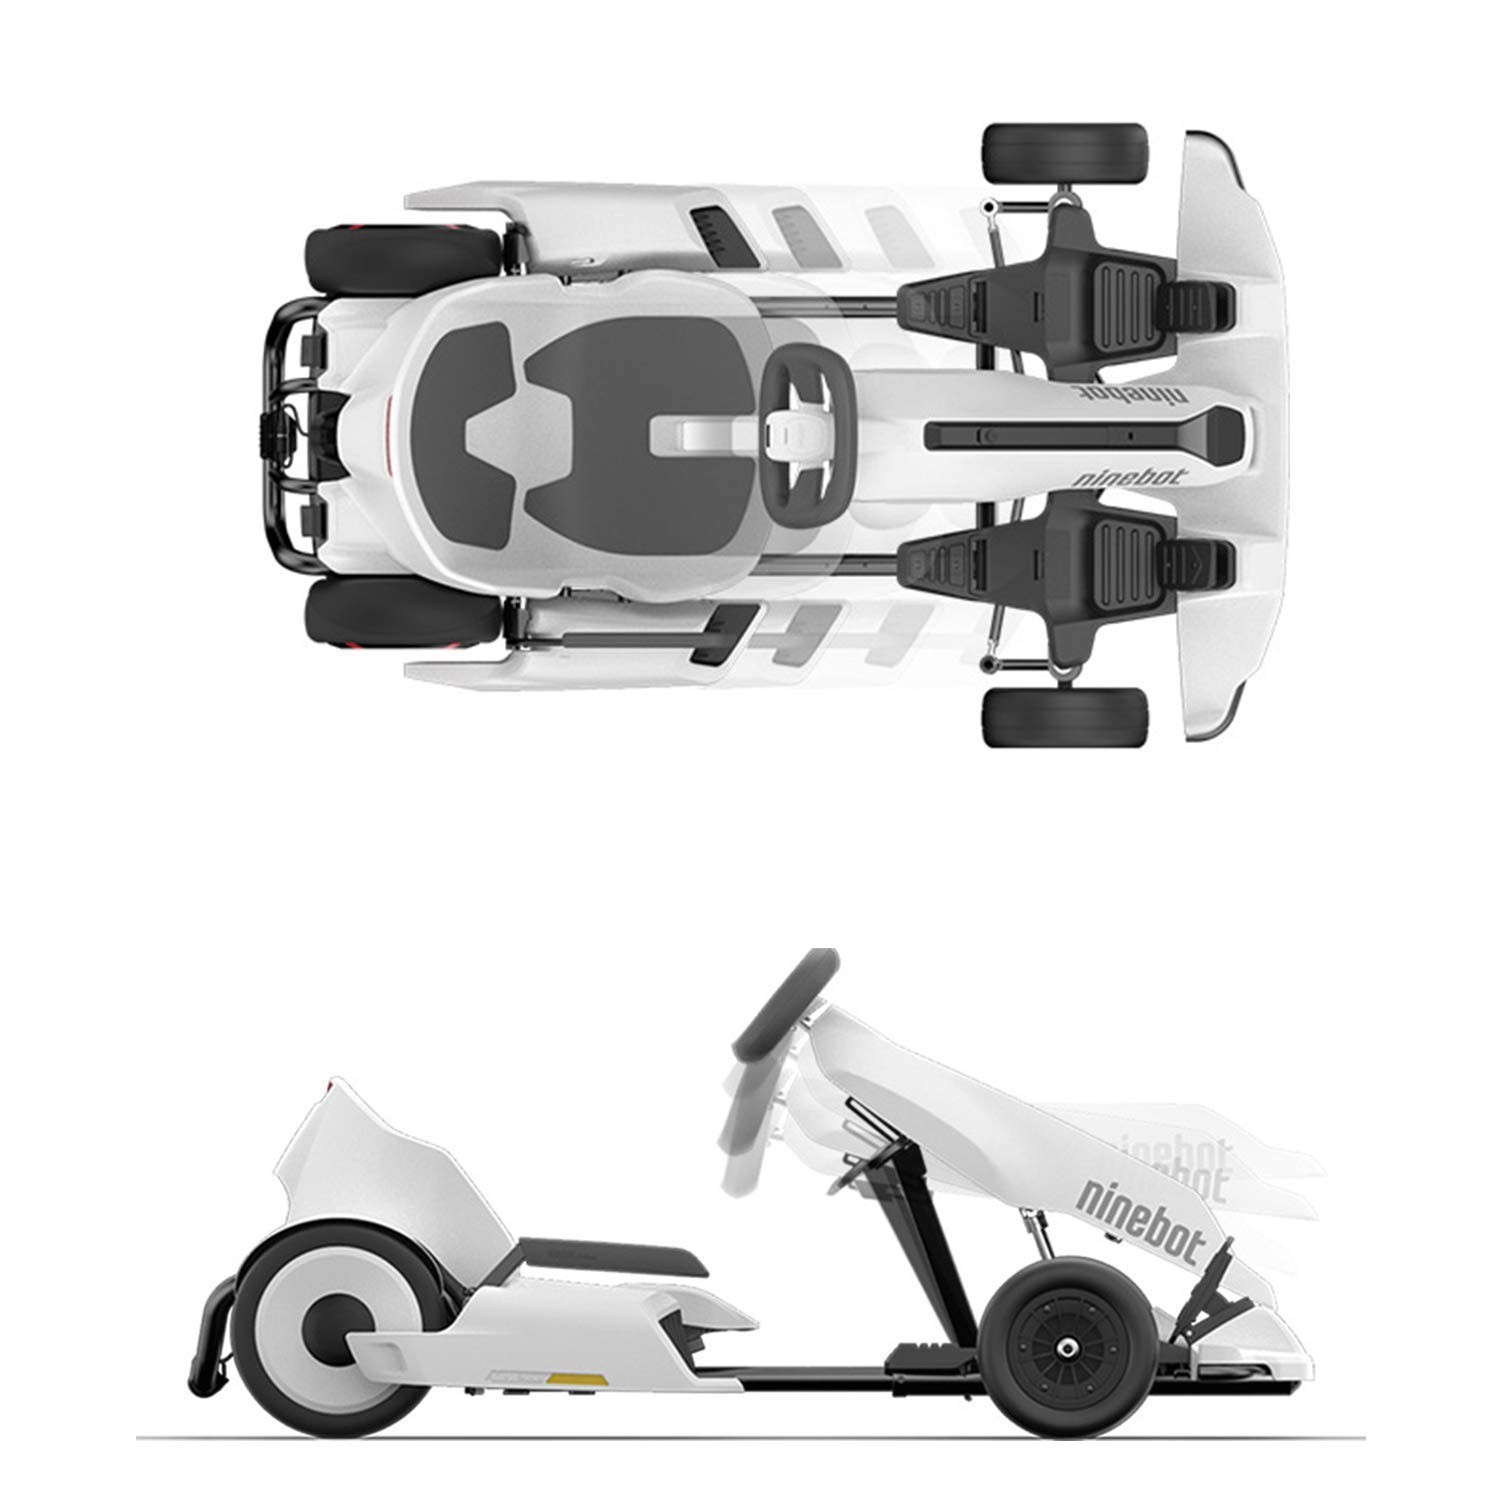 Ninebot Electric GoKart Kit for Segway miniPRO Ninebot S (Self Balancing  Scooter Excluded), 12 4 Miles Range, 15 MPH Top Speed, Mobile App Control,